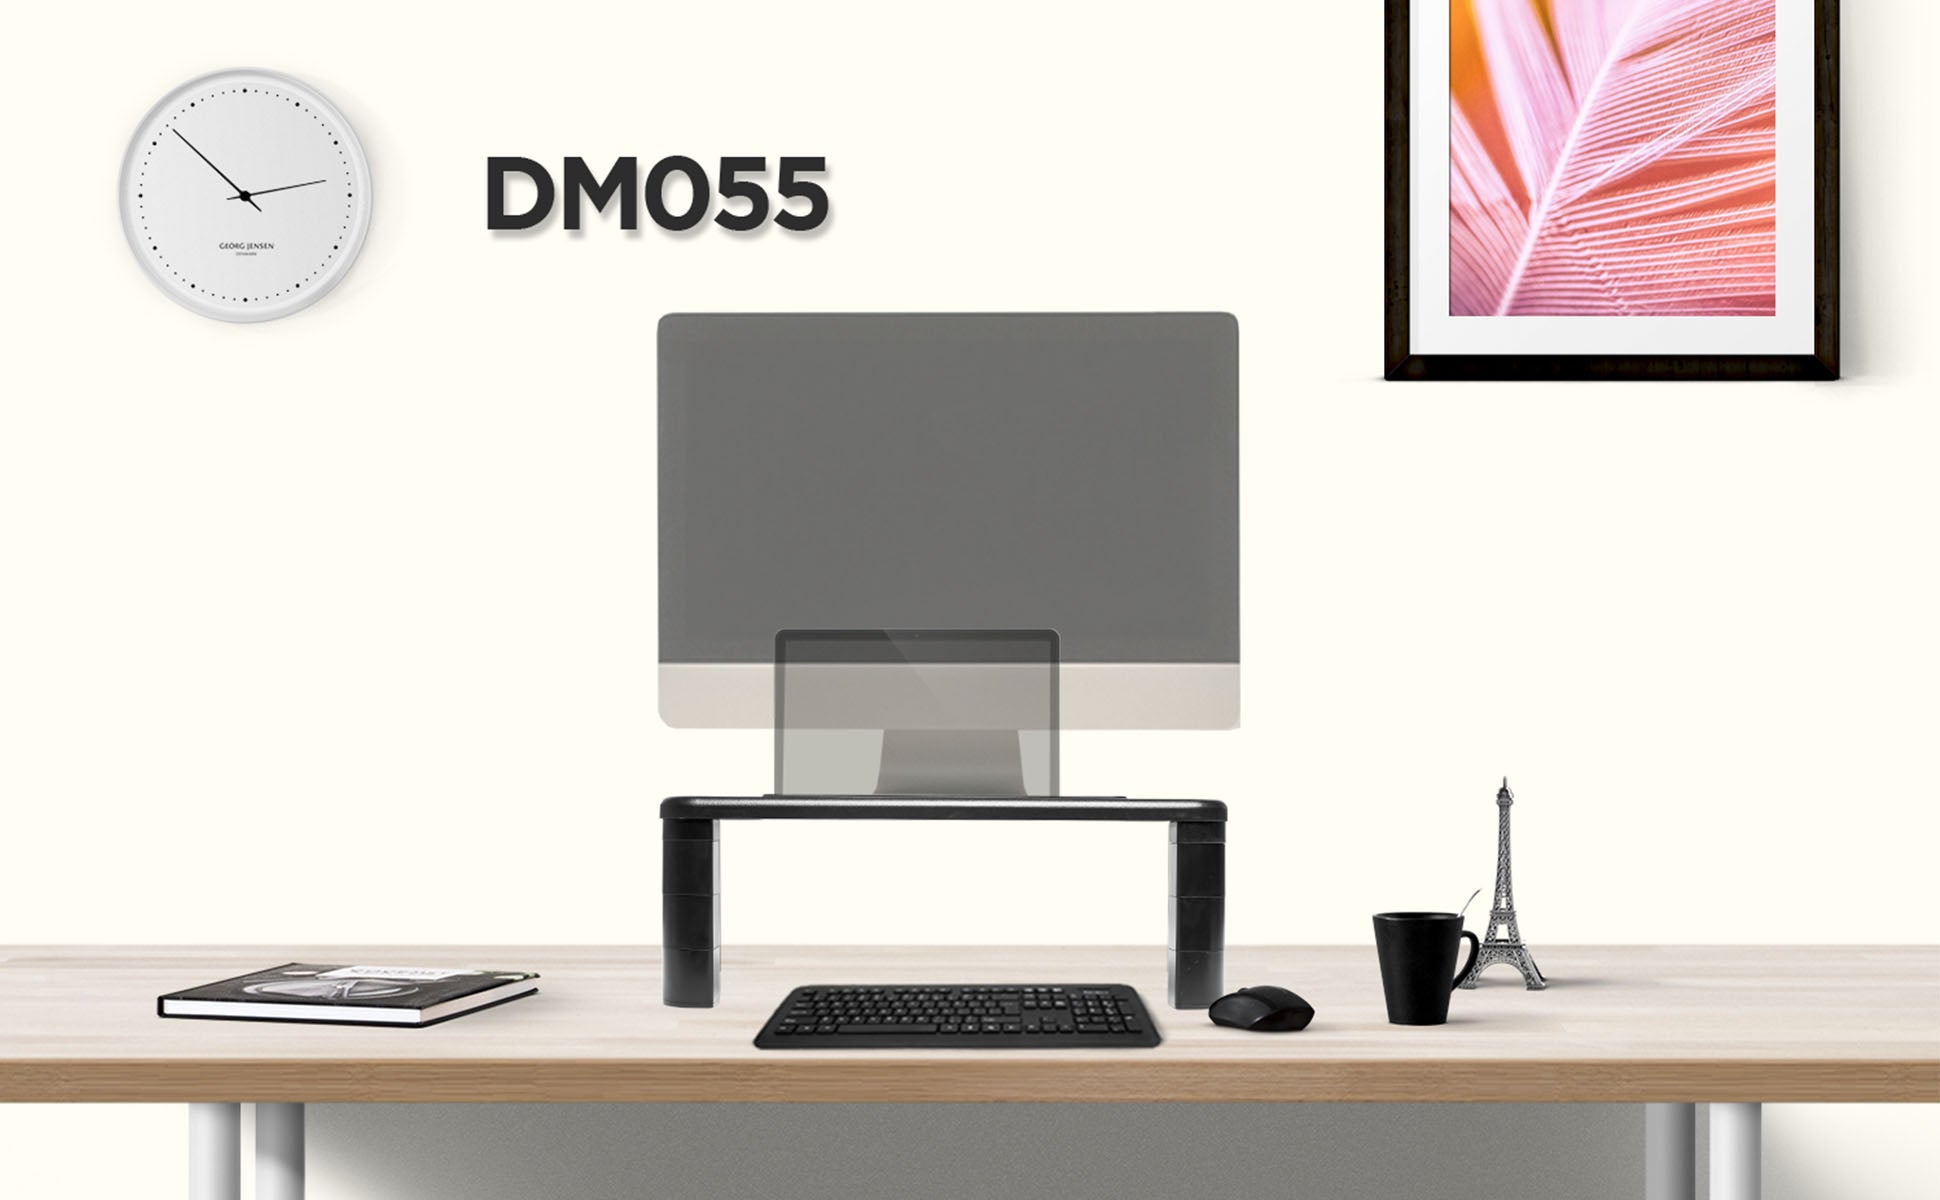 dm055, desk, mount, riser, stand, monitor, screen, computer, laptop, keyboard, tidy, space saver, office